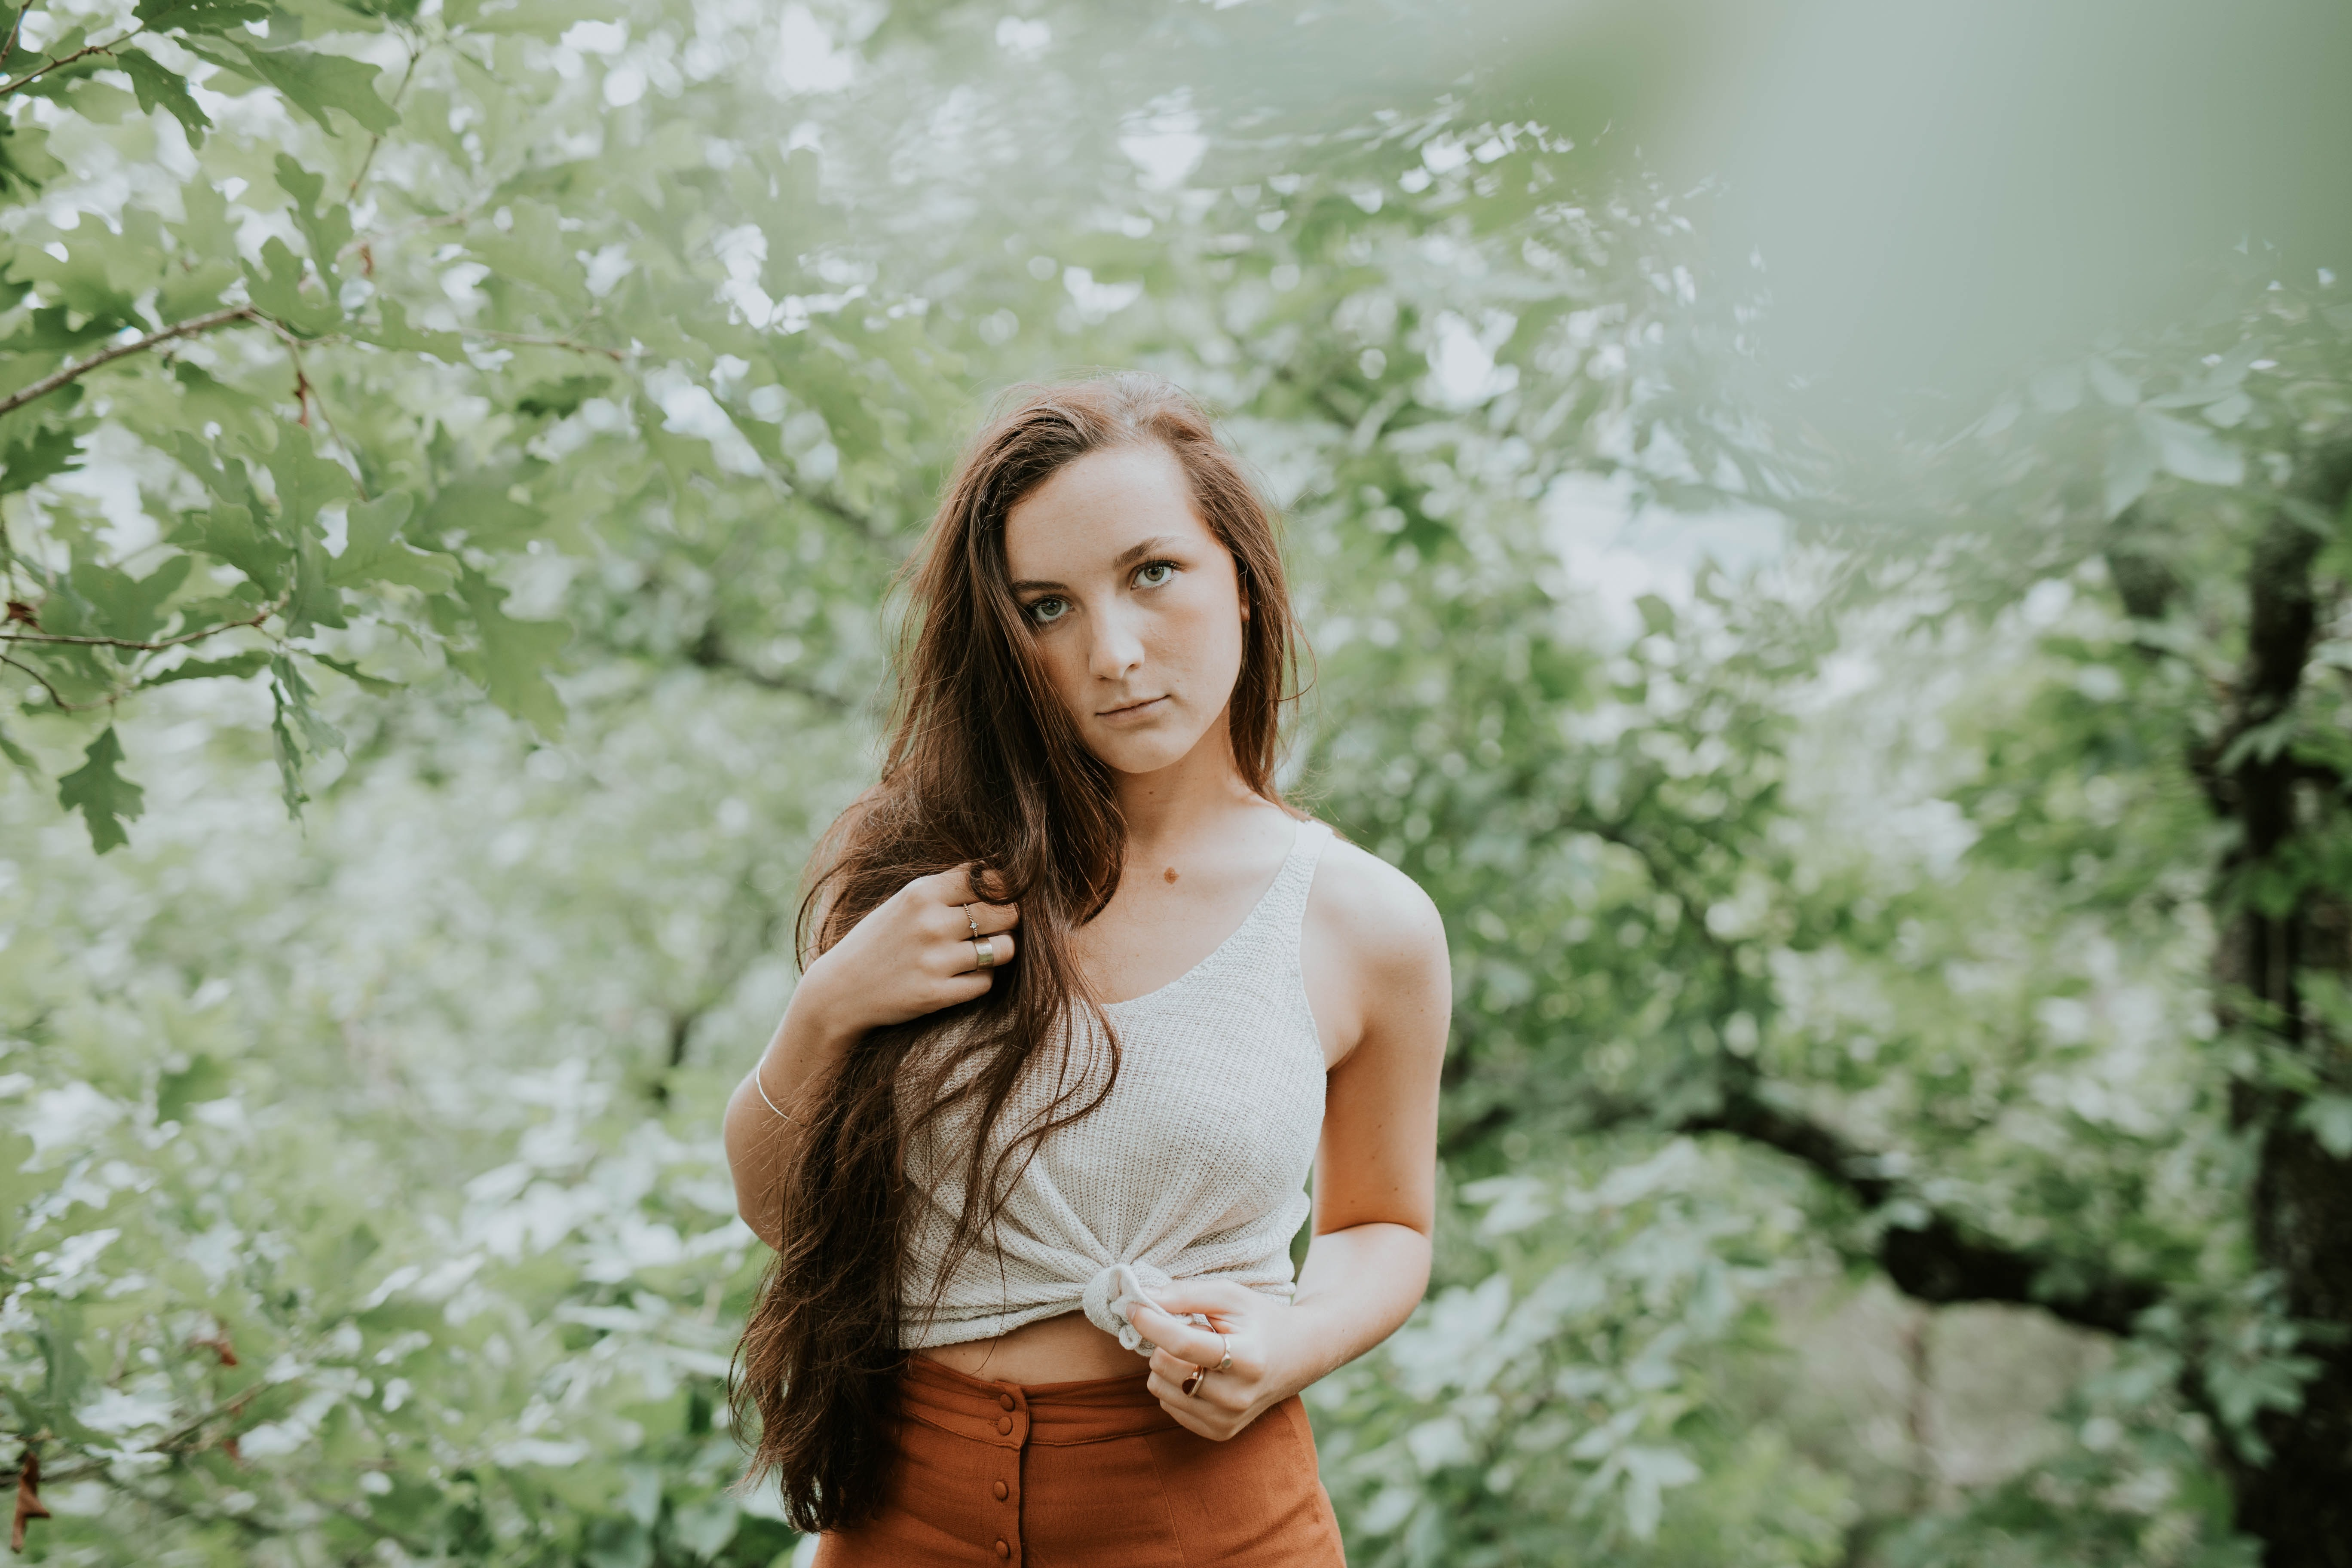 selective focus photography of woman in tank top standing in forest